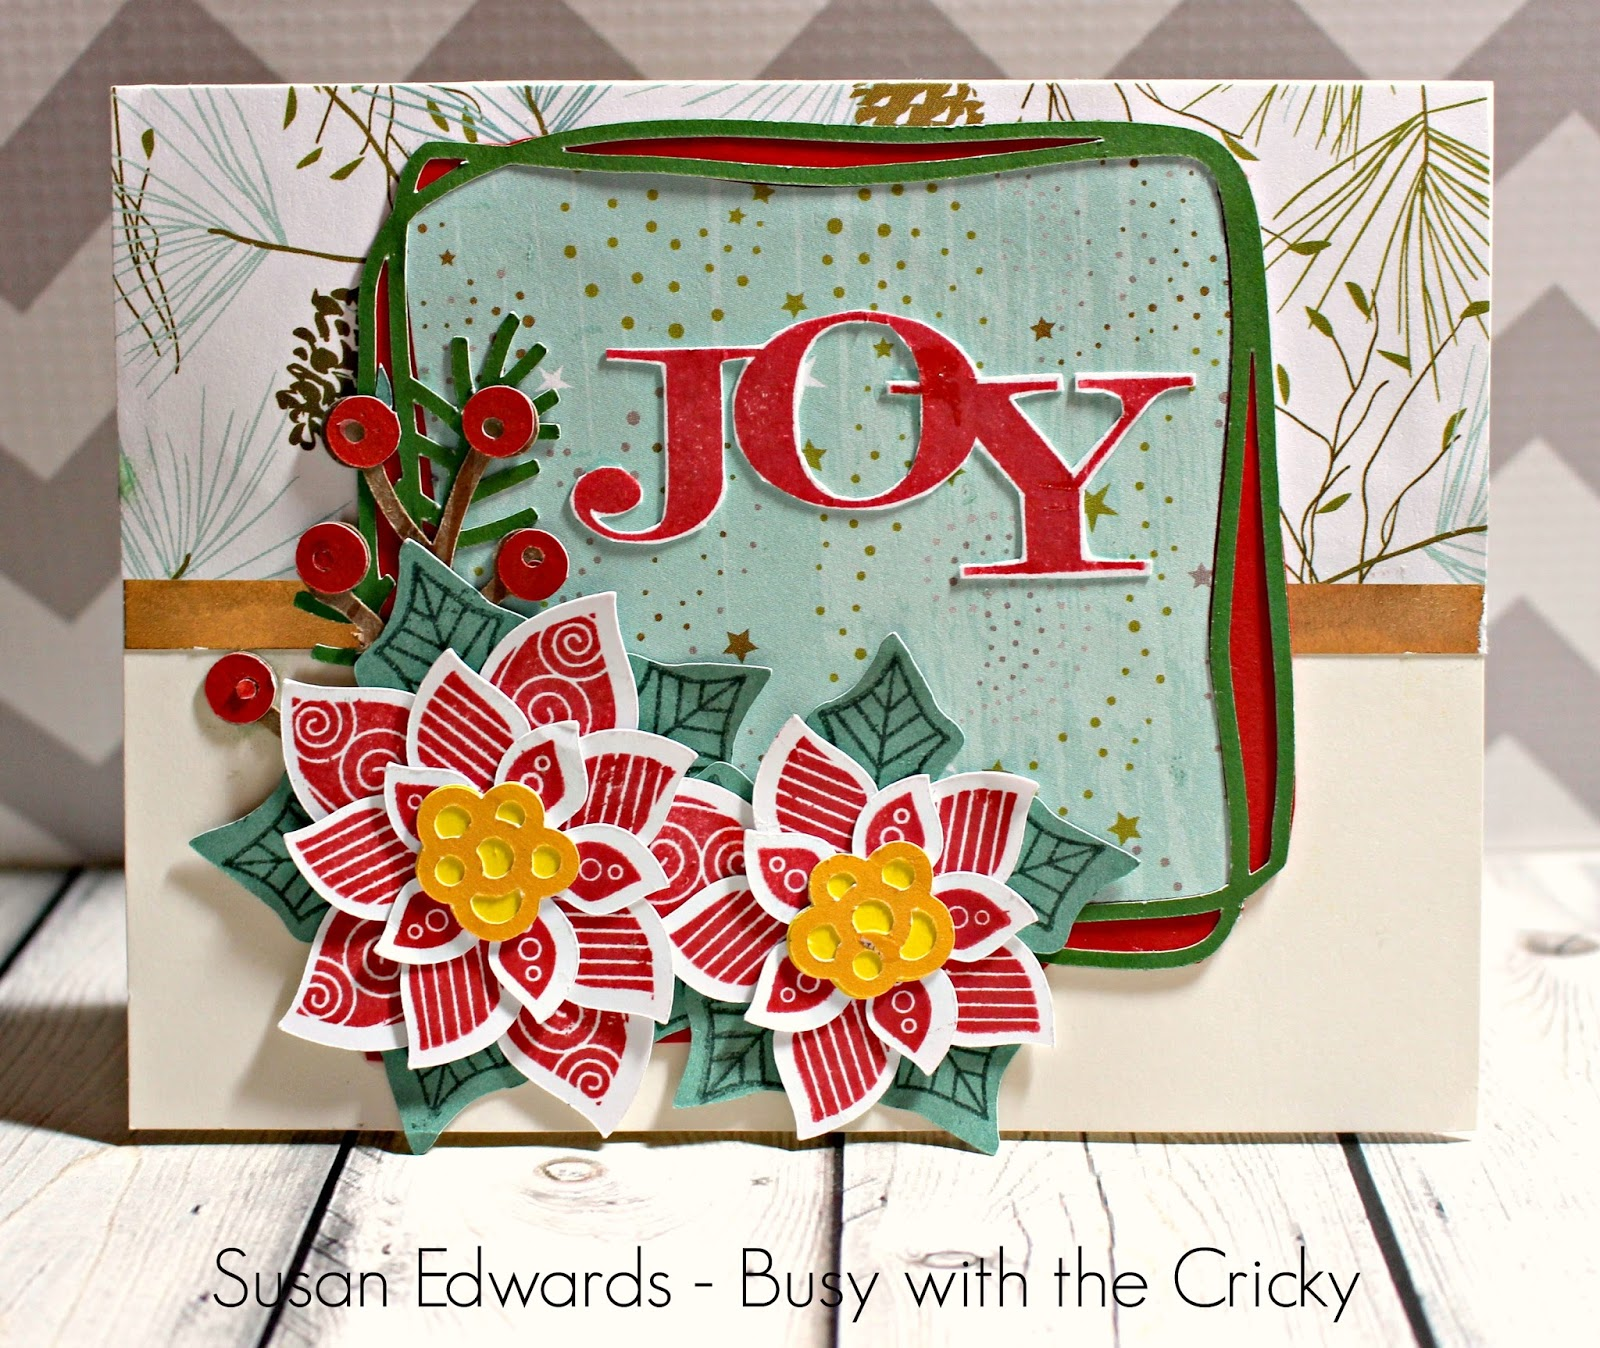 Busy with the Cricky: Joy Filled Christmas Card